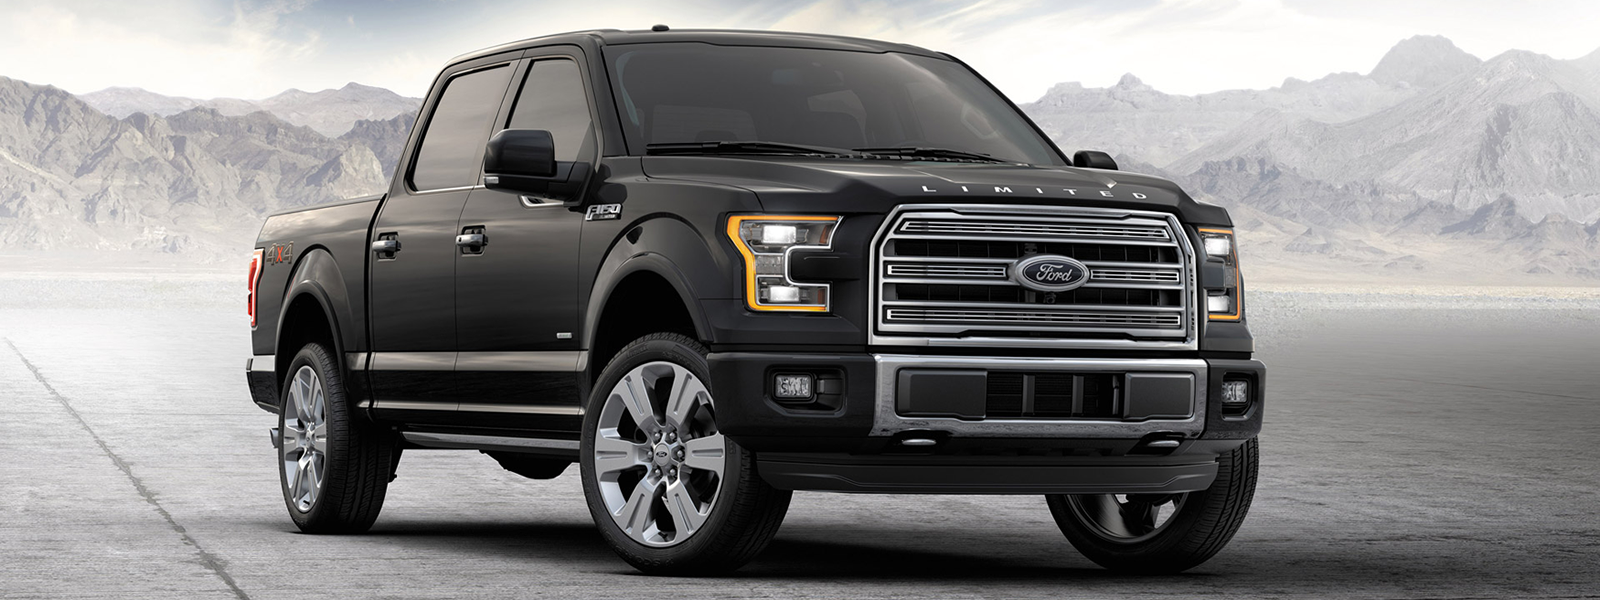 Ford F-150 Inventory in Boston, Massachusetts (MA)